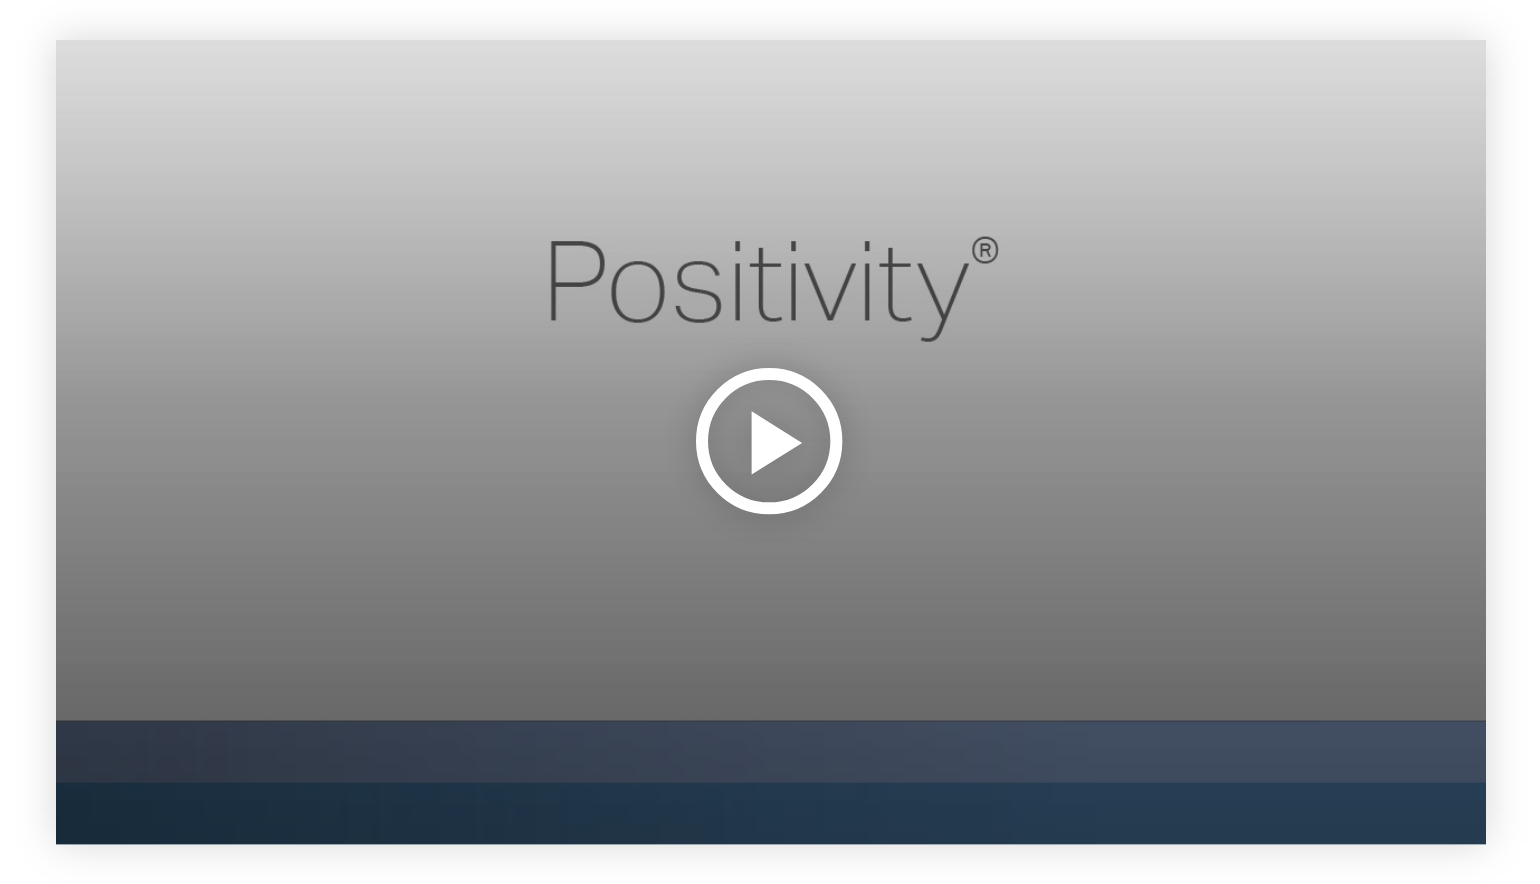 Play video:Positivity - Learn more about your innate talents from Gallup's Clifton StrengthsFinder!